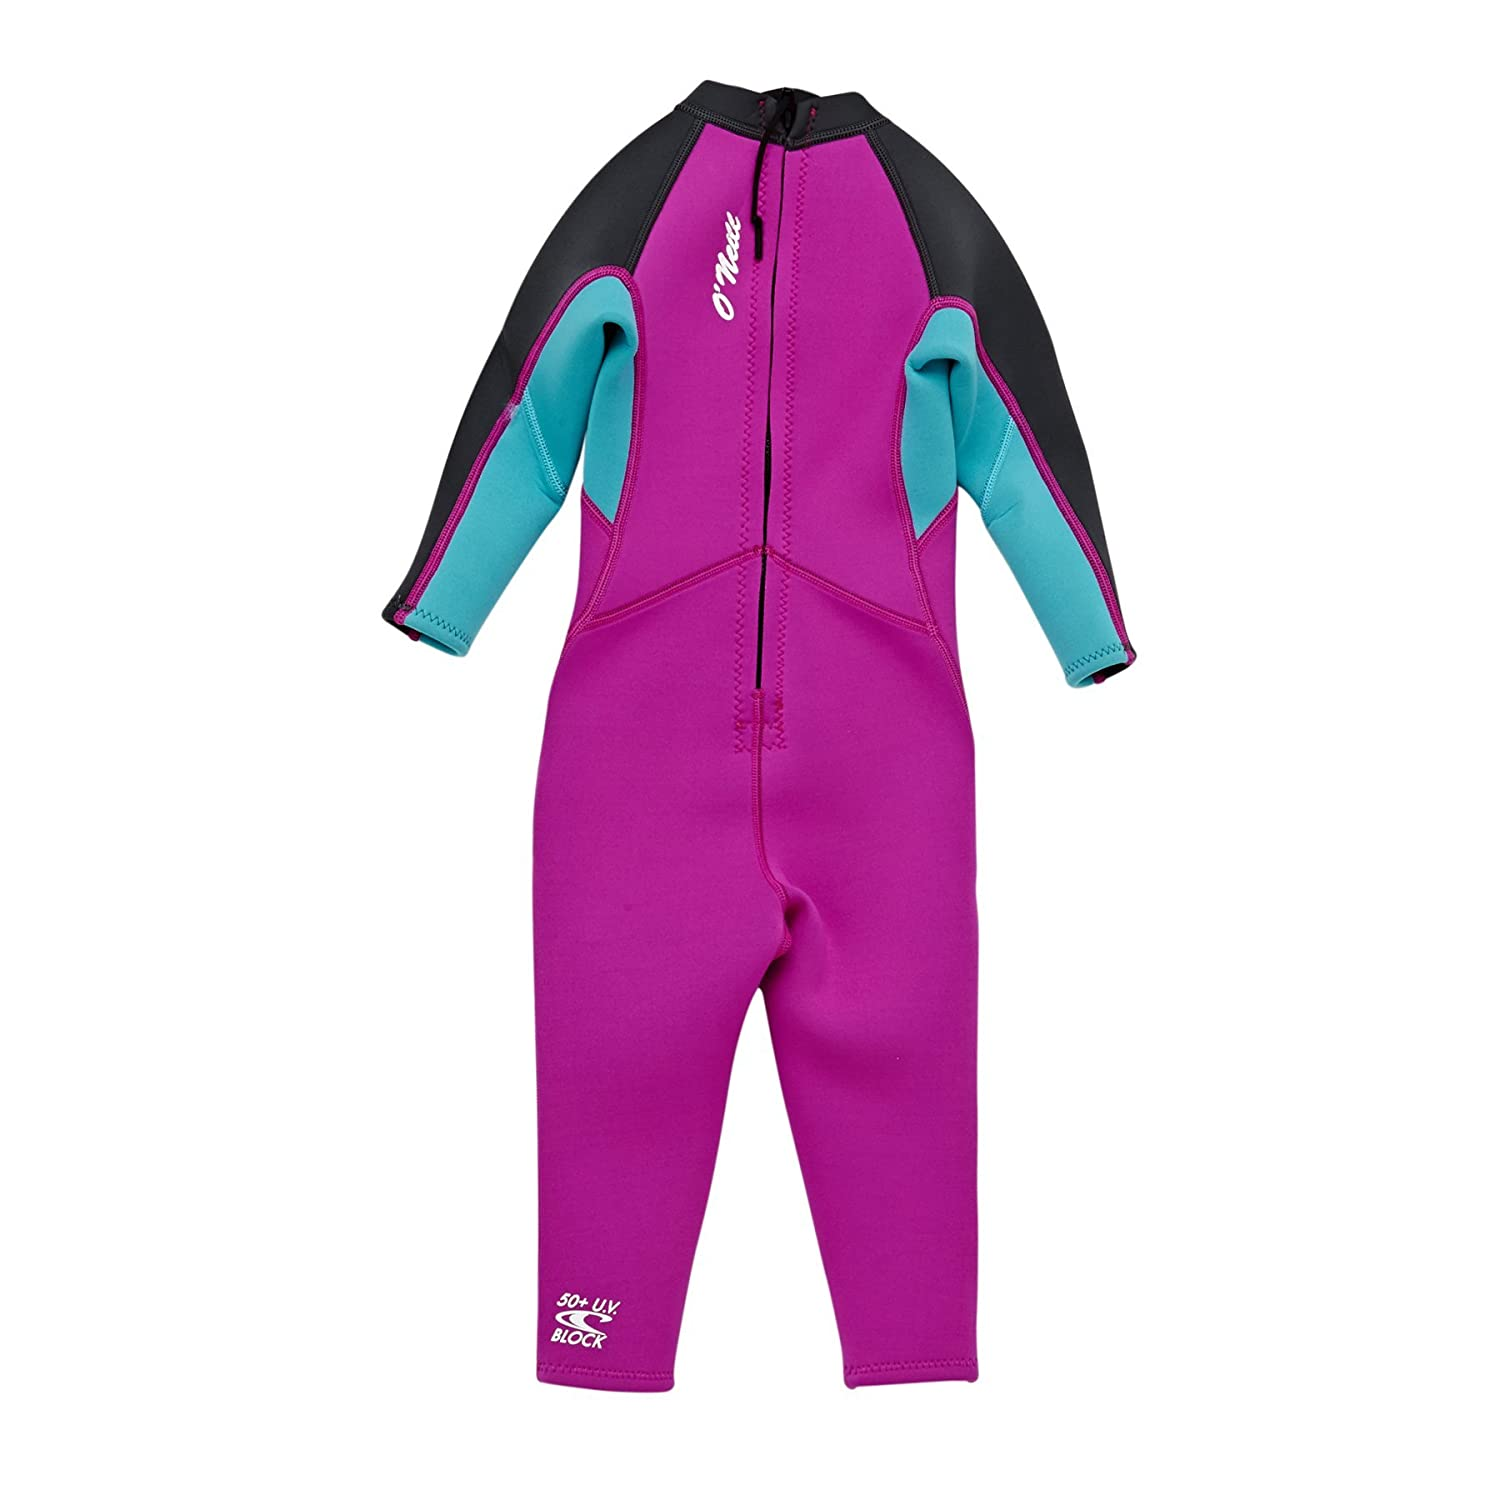 O Neill 2018 Toddler Girls Reactor 2mm Back Zip Wetsuit BERRY AQUA 4868G   Amazon.co.uk  Sports   Outdoors 28ecccfb5